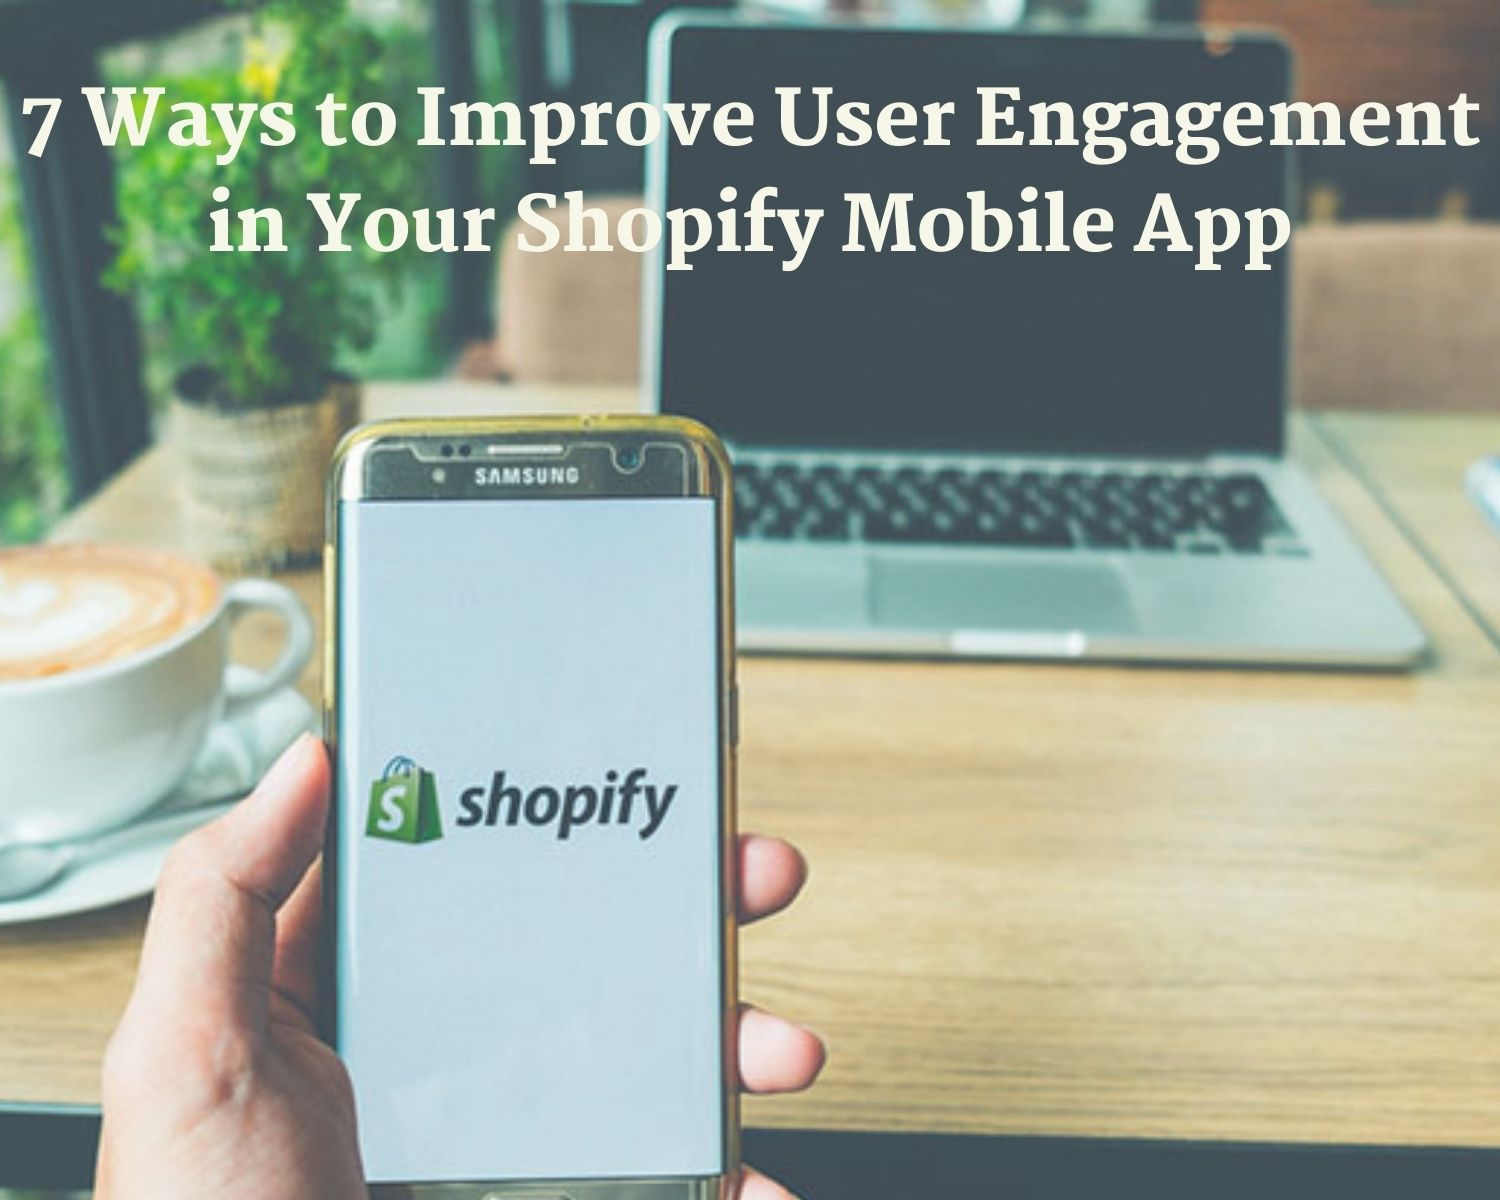 Improve User Engagement